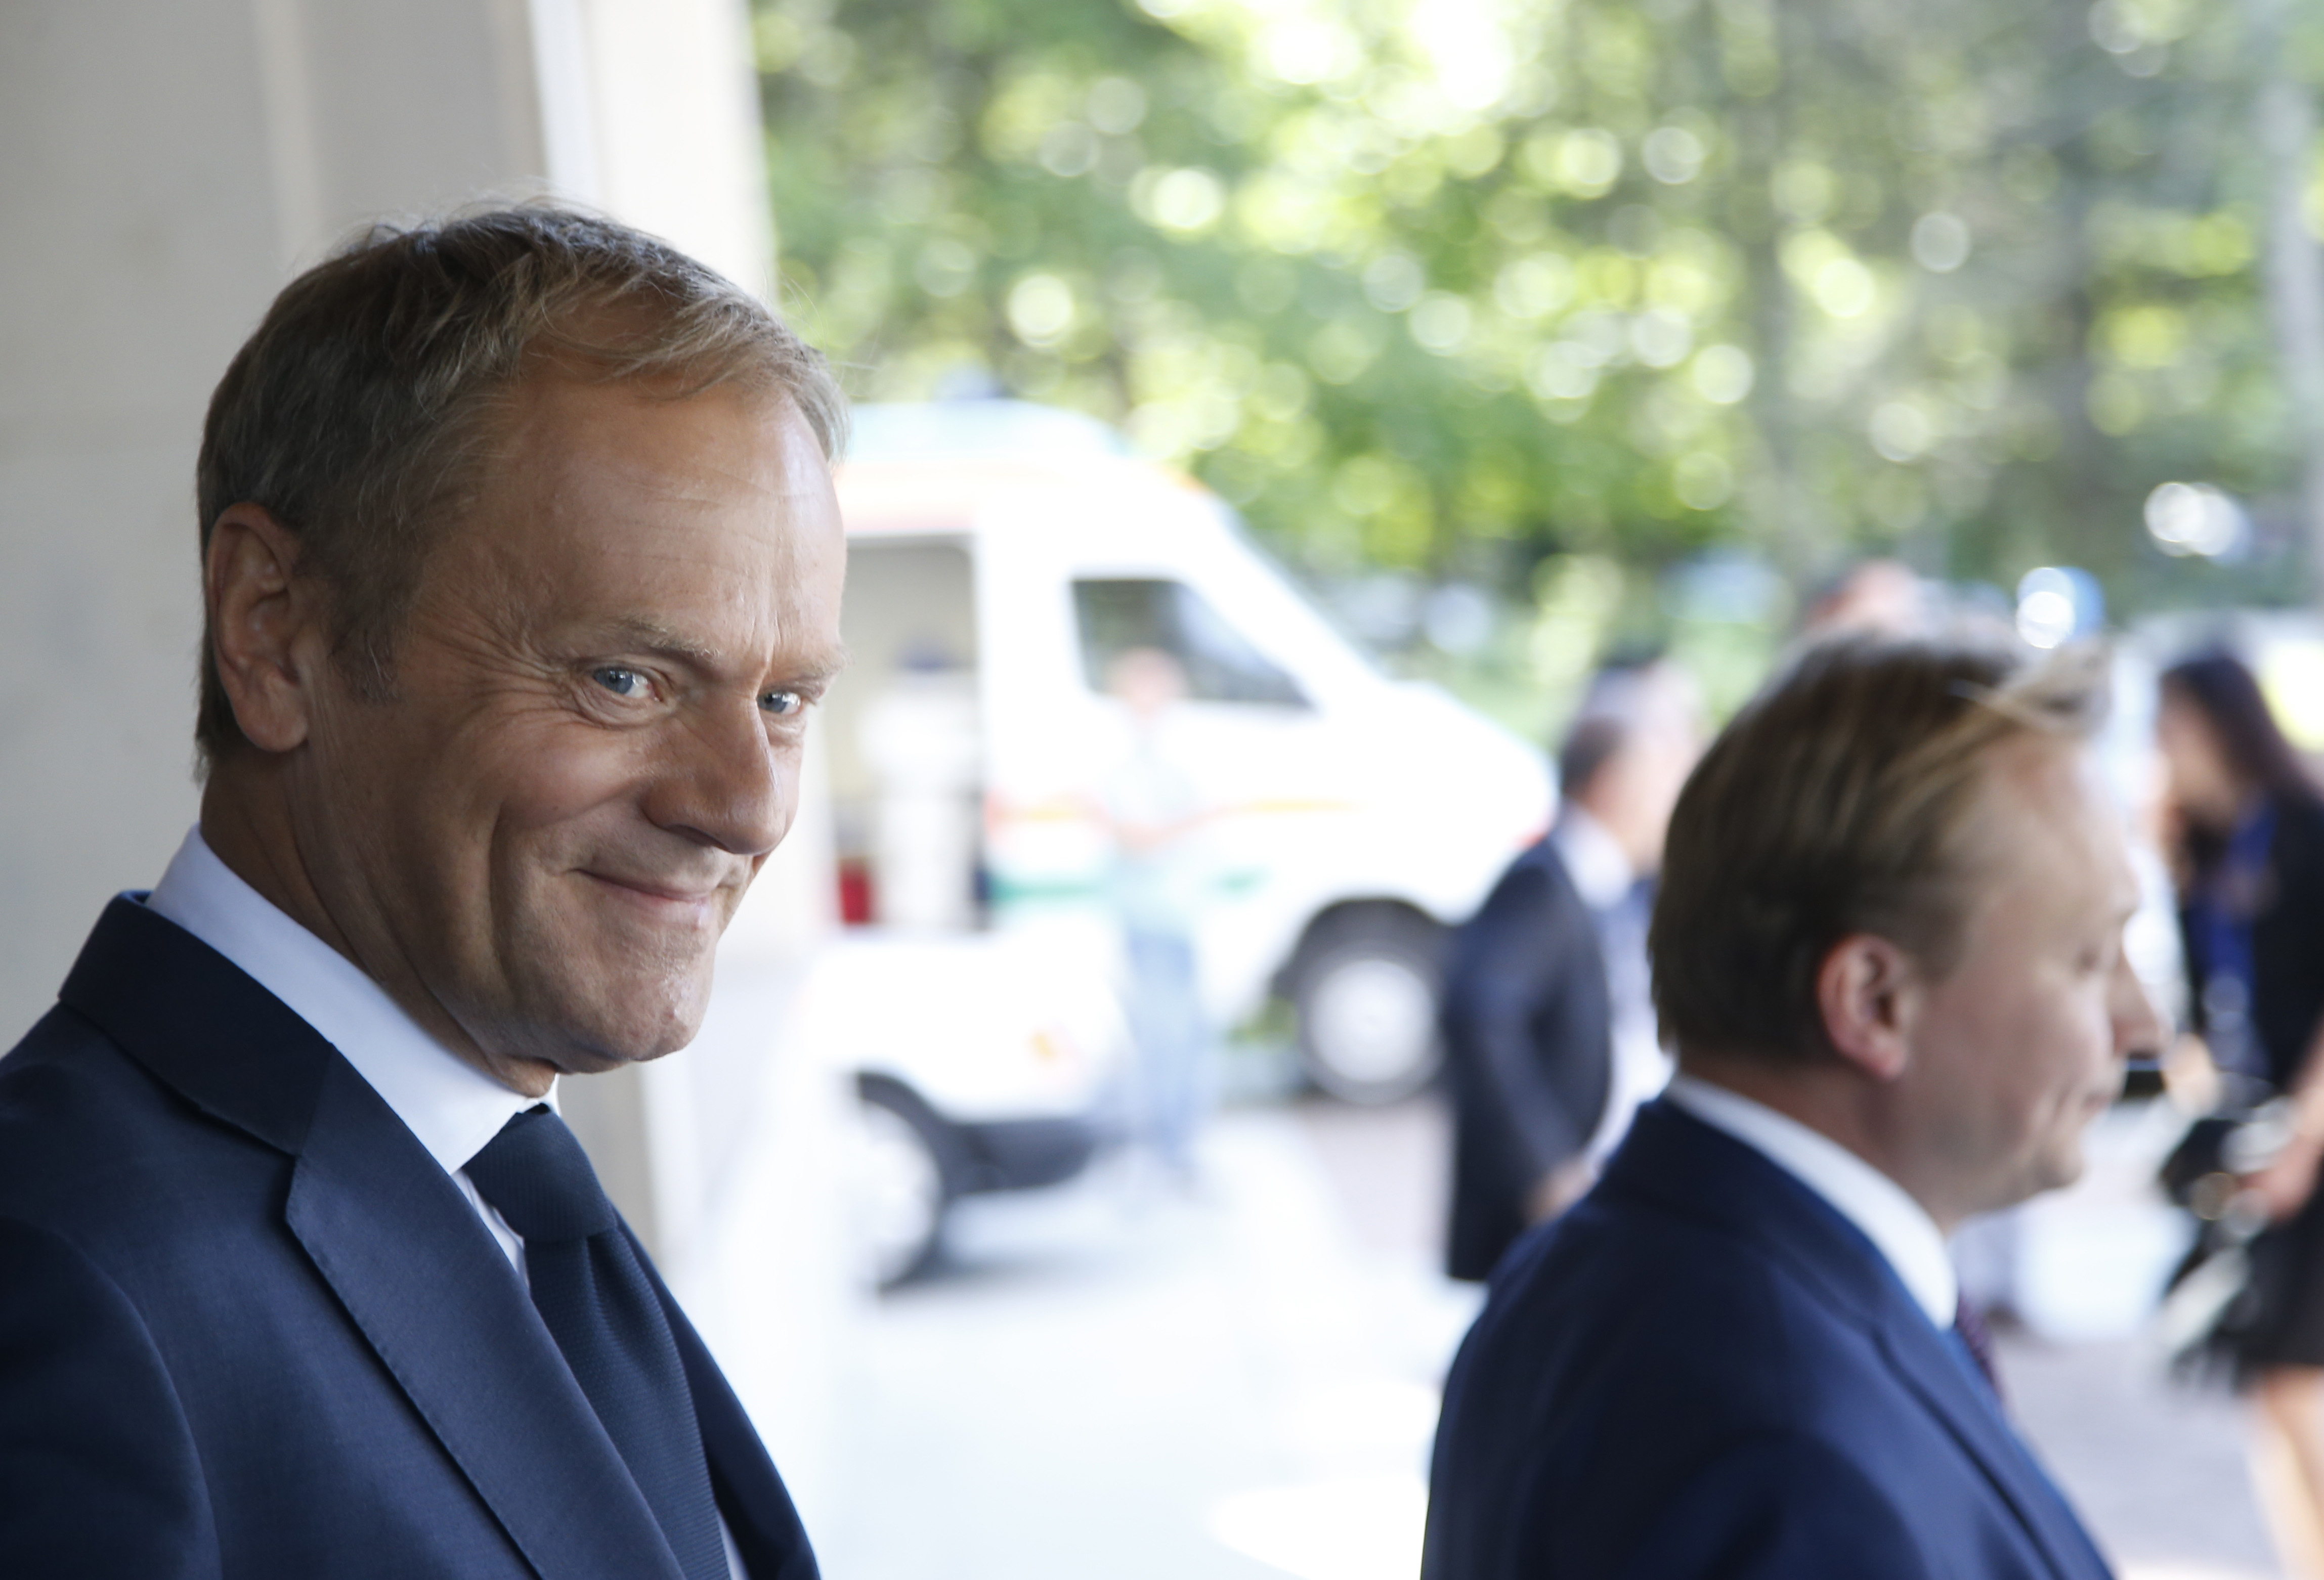 European Union  chief Tusk chides Trump for 'capricious' policies